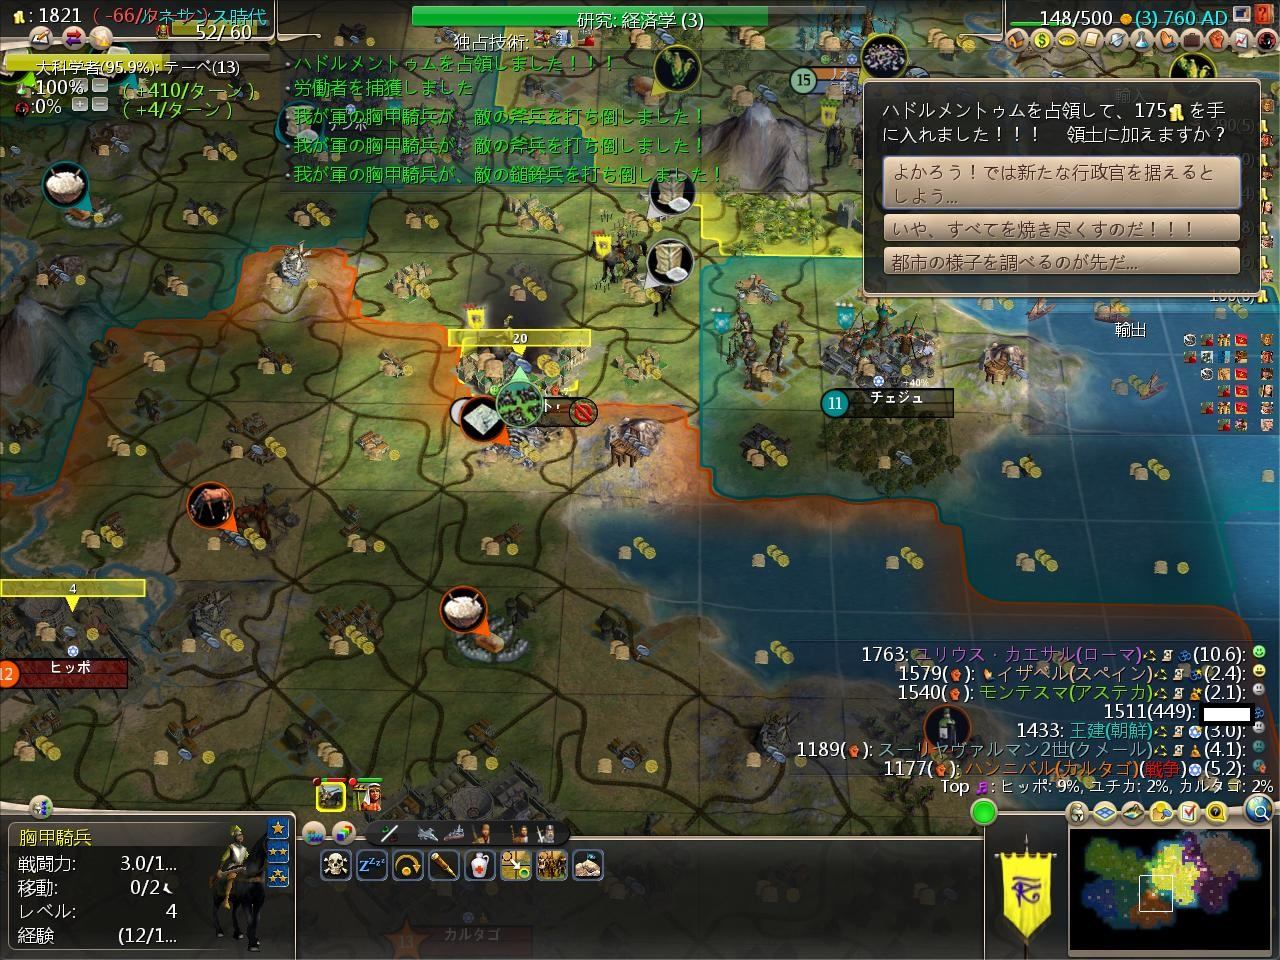 Civ4ScreenShot2144.JPG